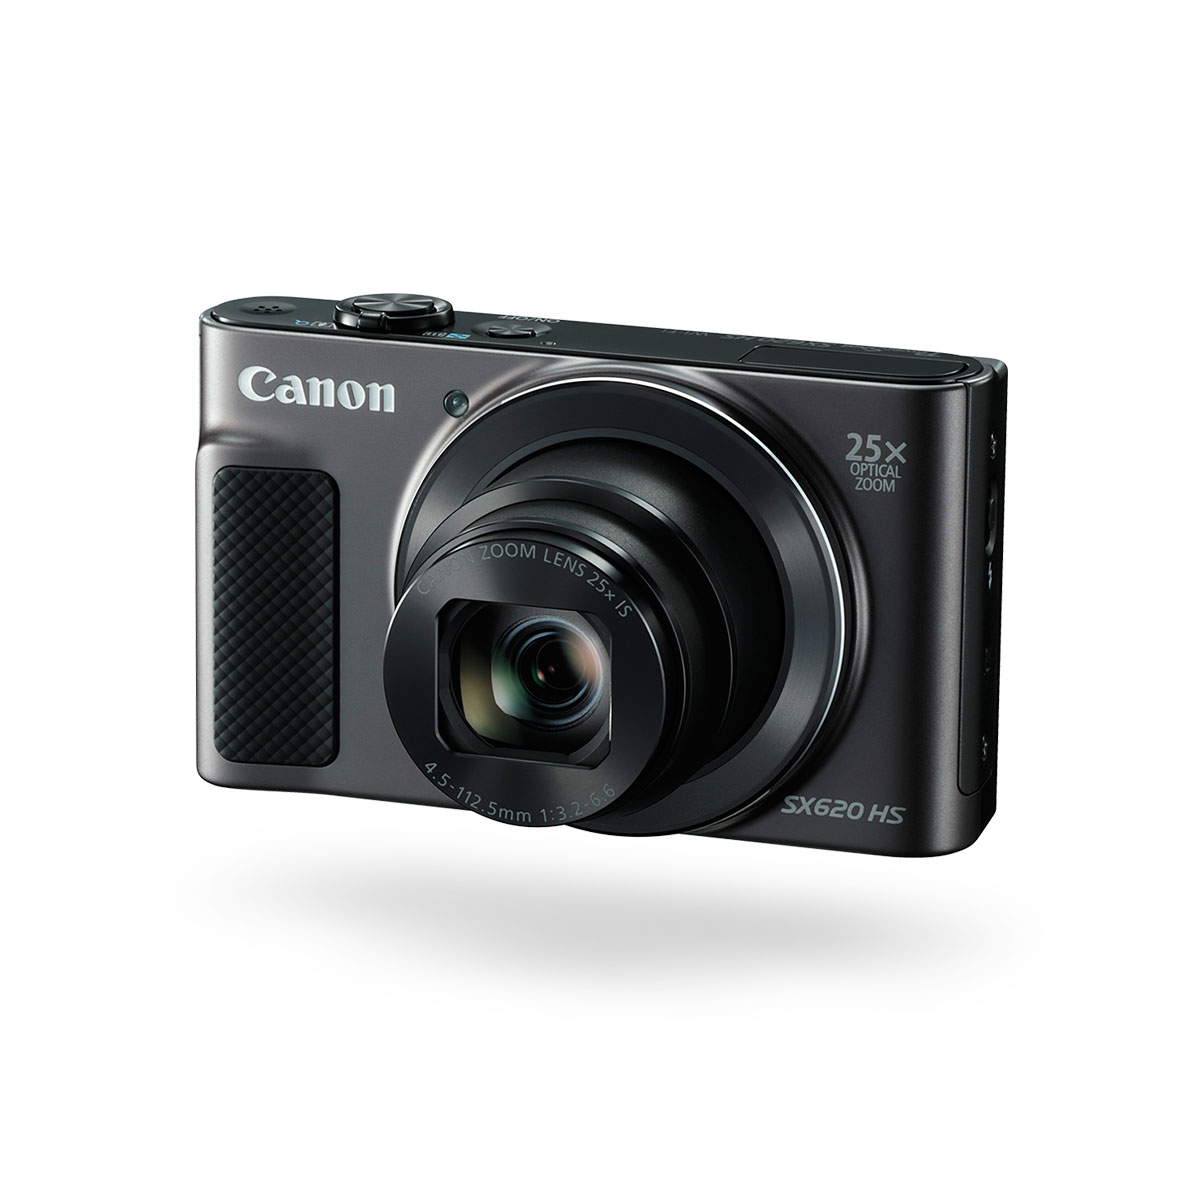 Canon PowerShot SX620 HS black compact camera front angled